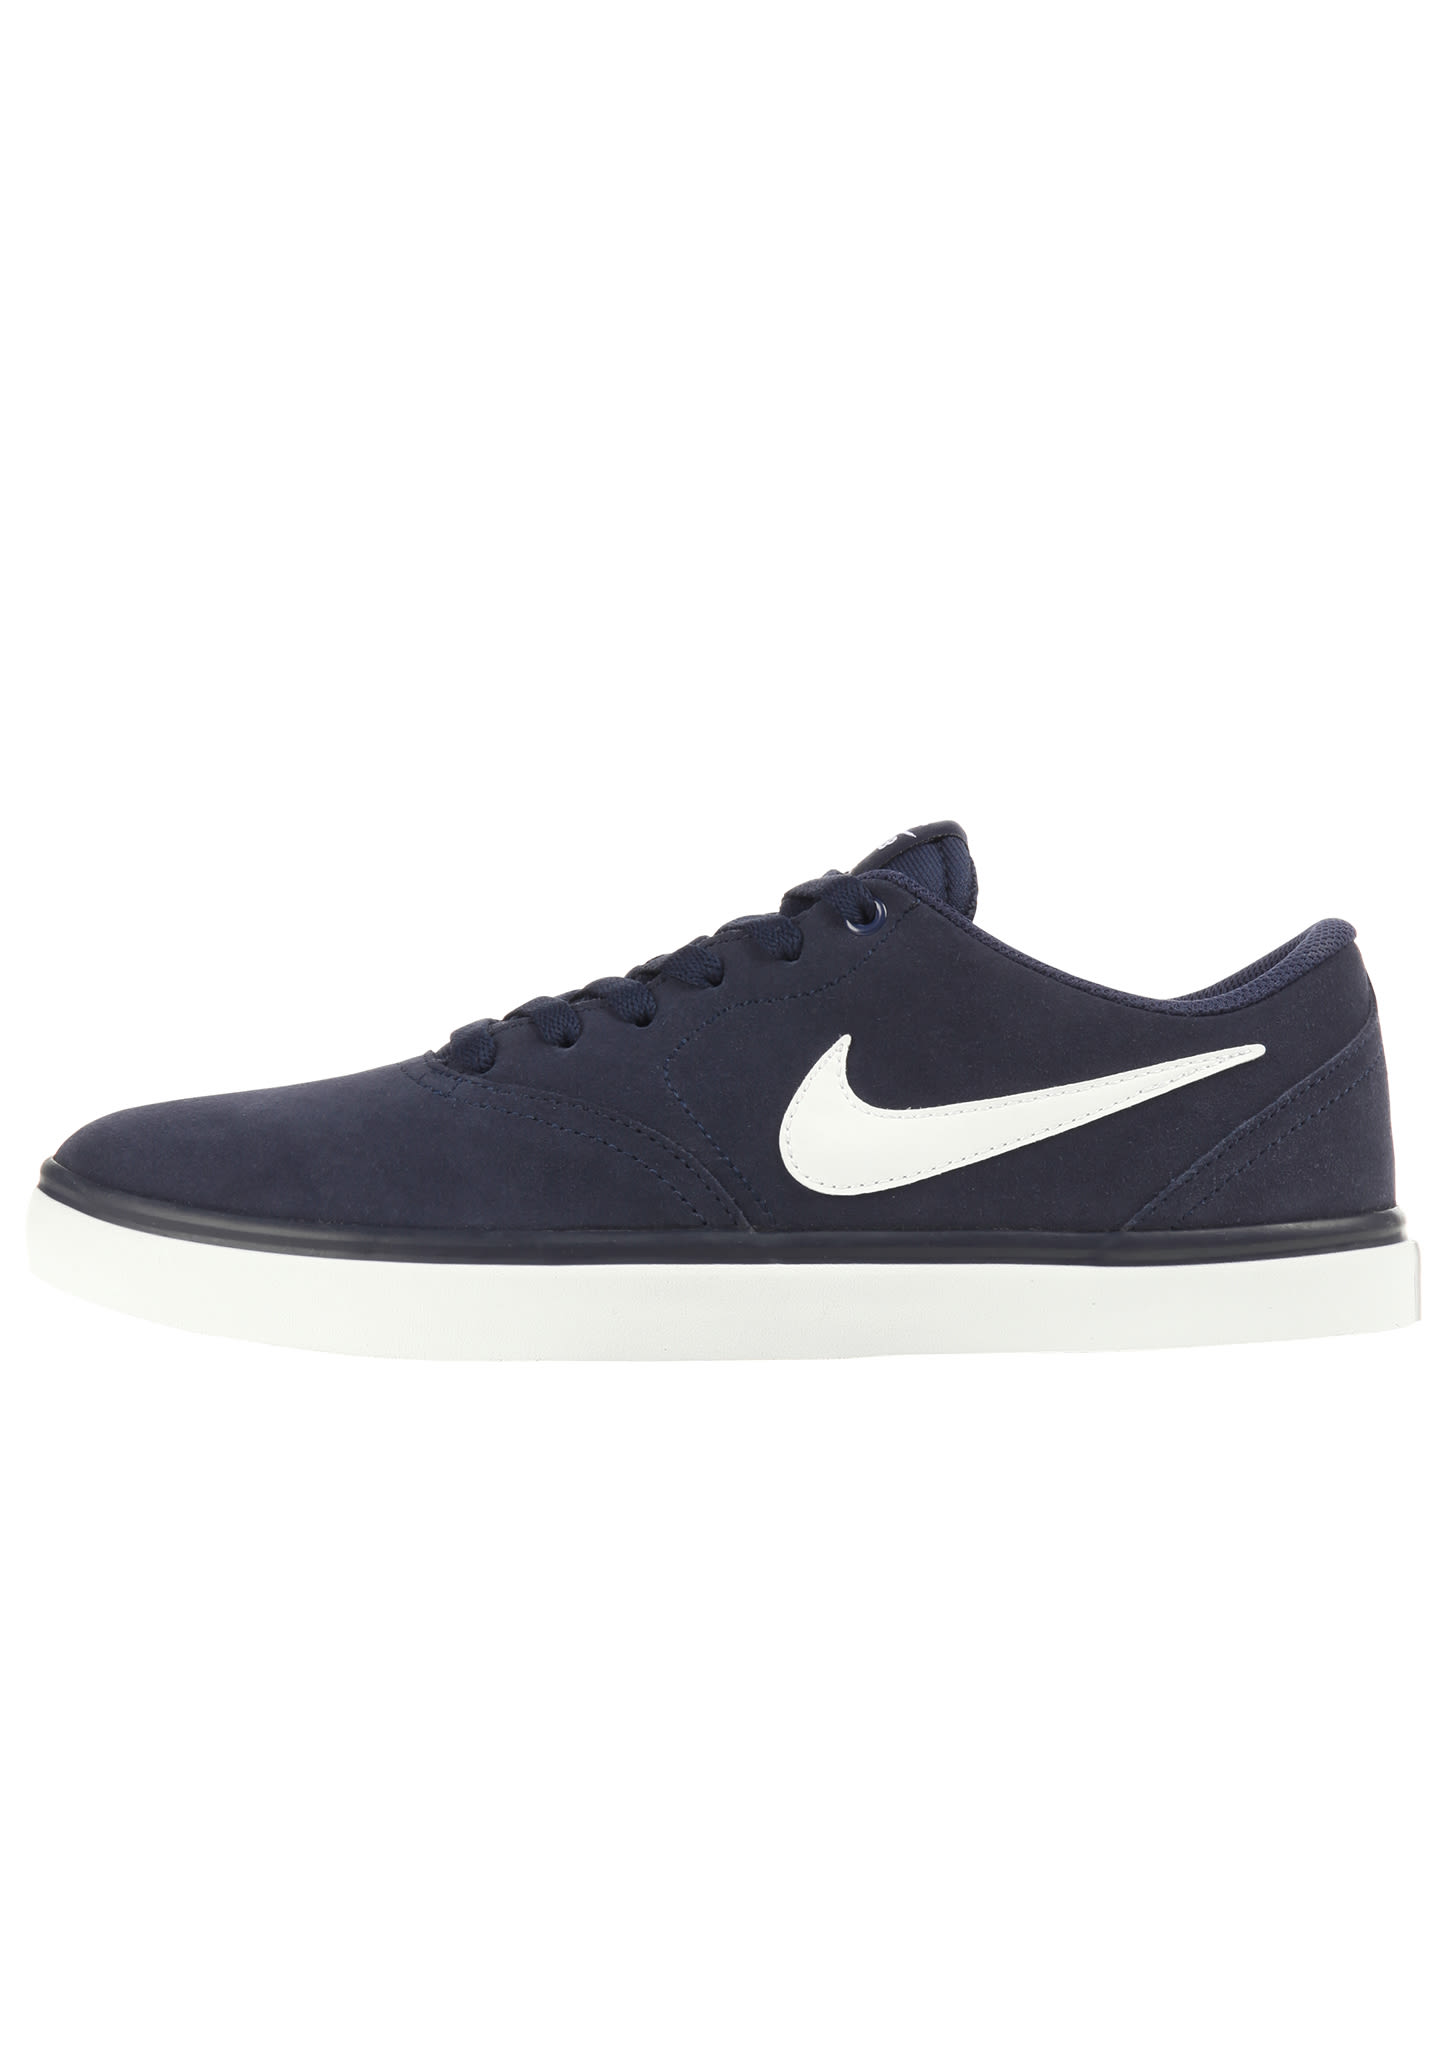 outlet online hot sale online release date NIKE SB Check Solar - Sneakers for Men - Blue